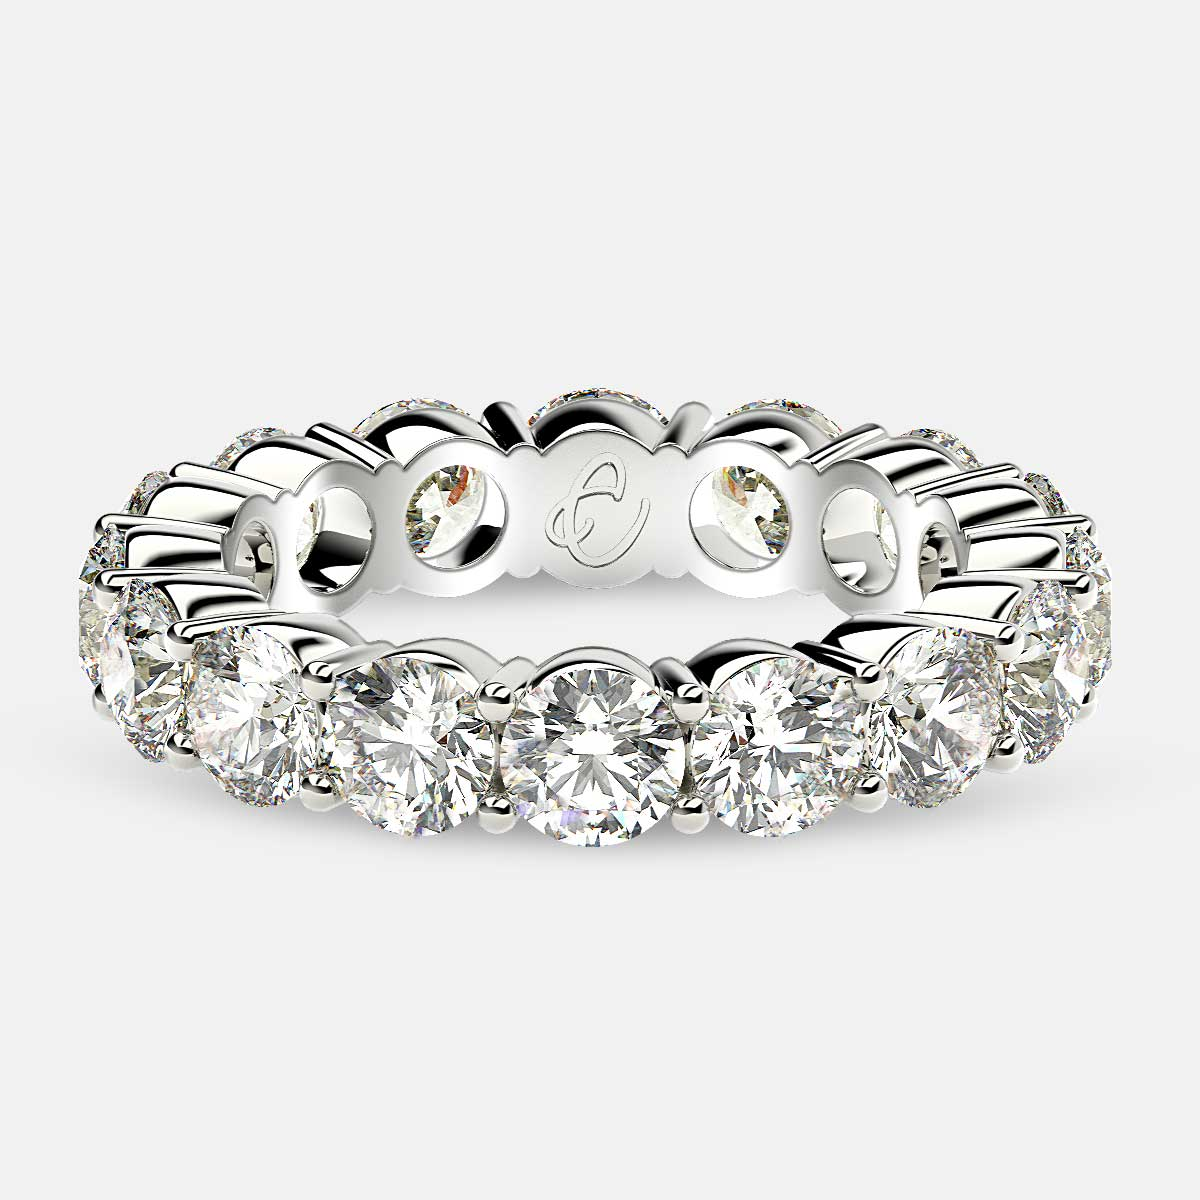 Eternity Ring with Prong Set Round Diamonds in 18k White Gold